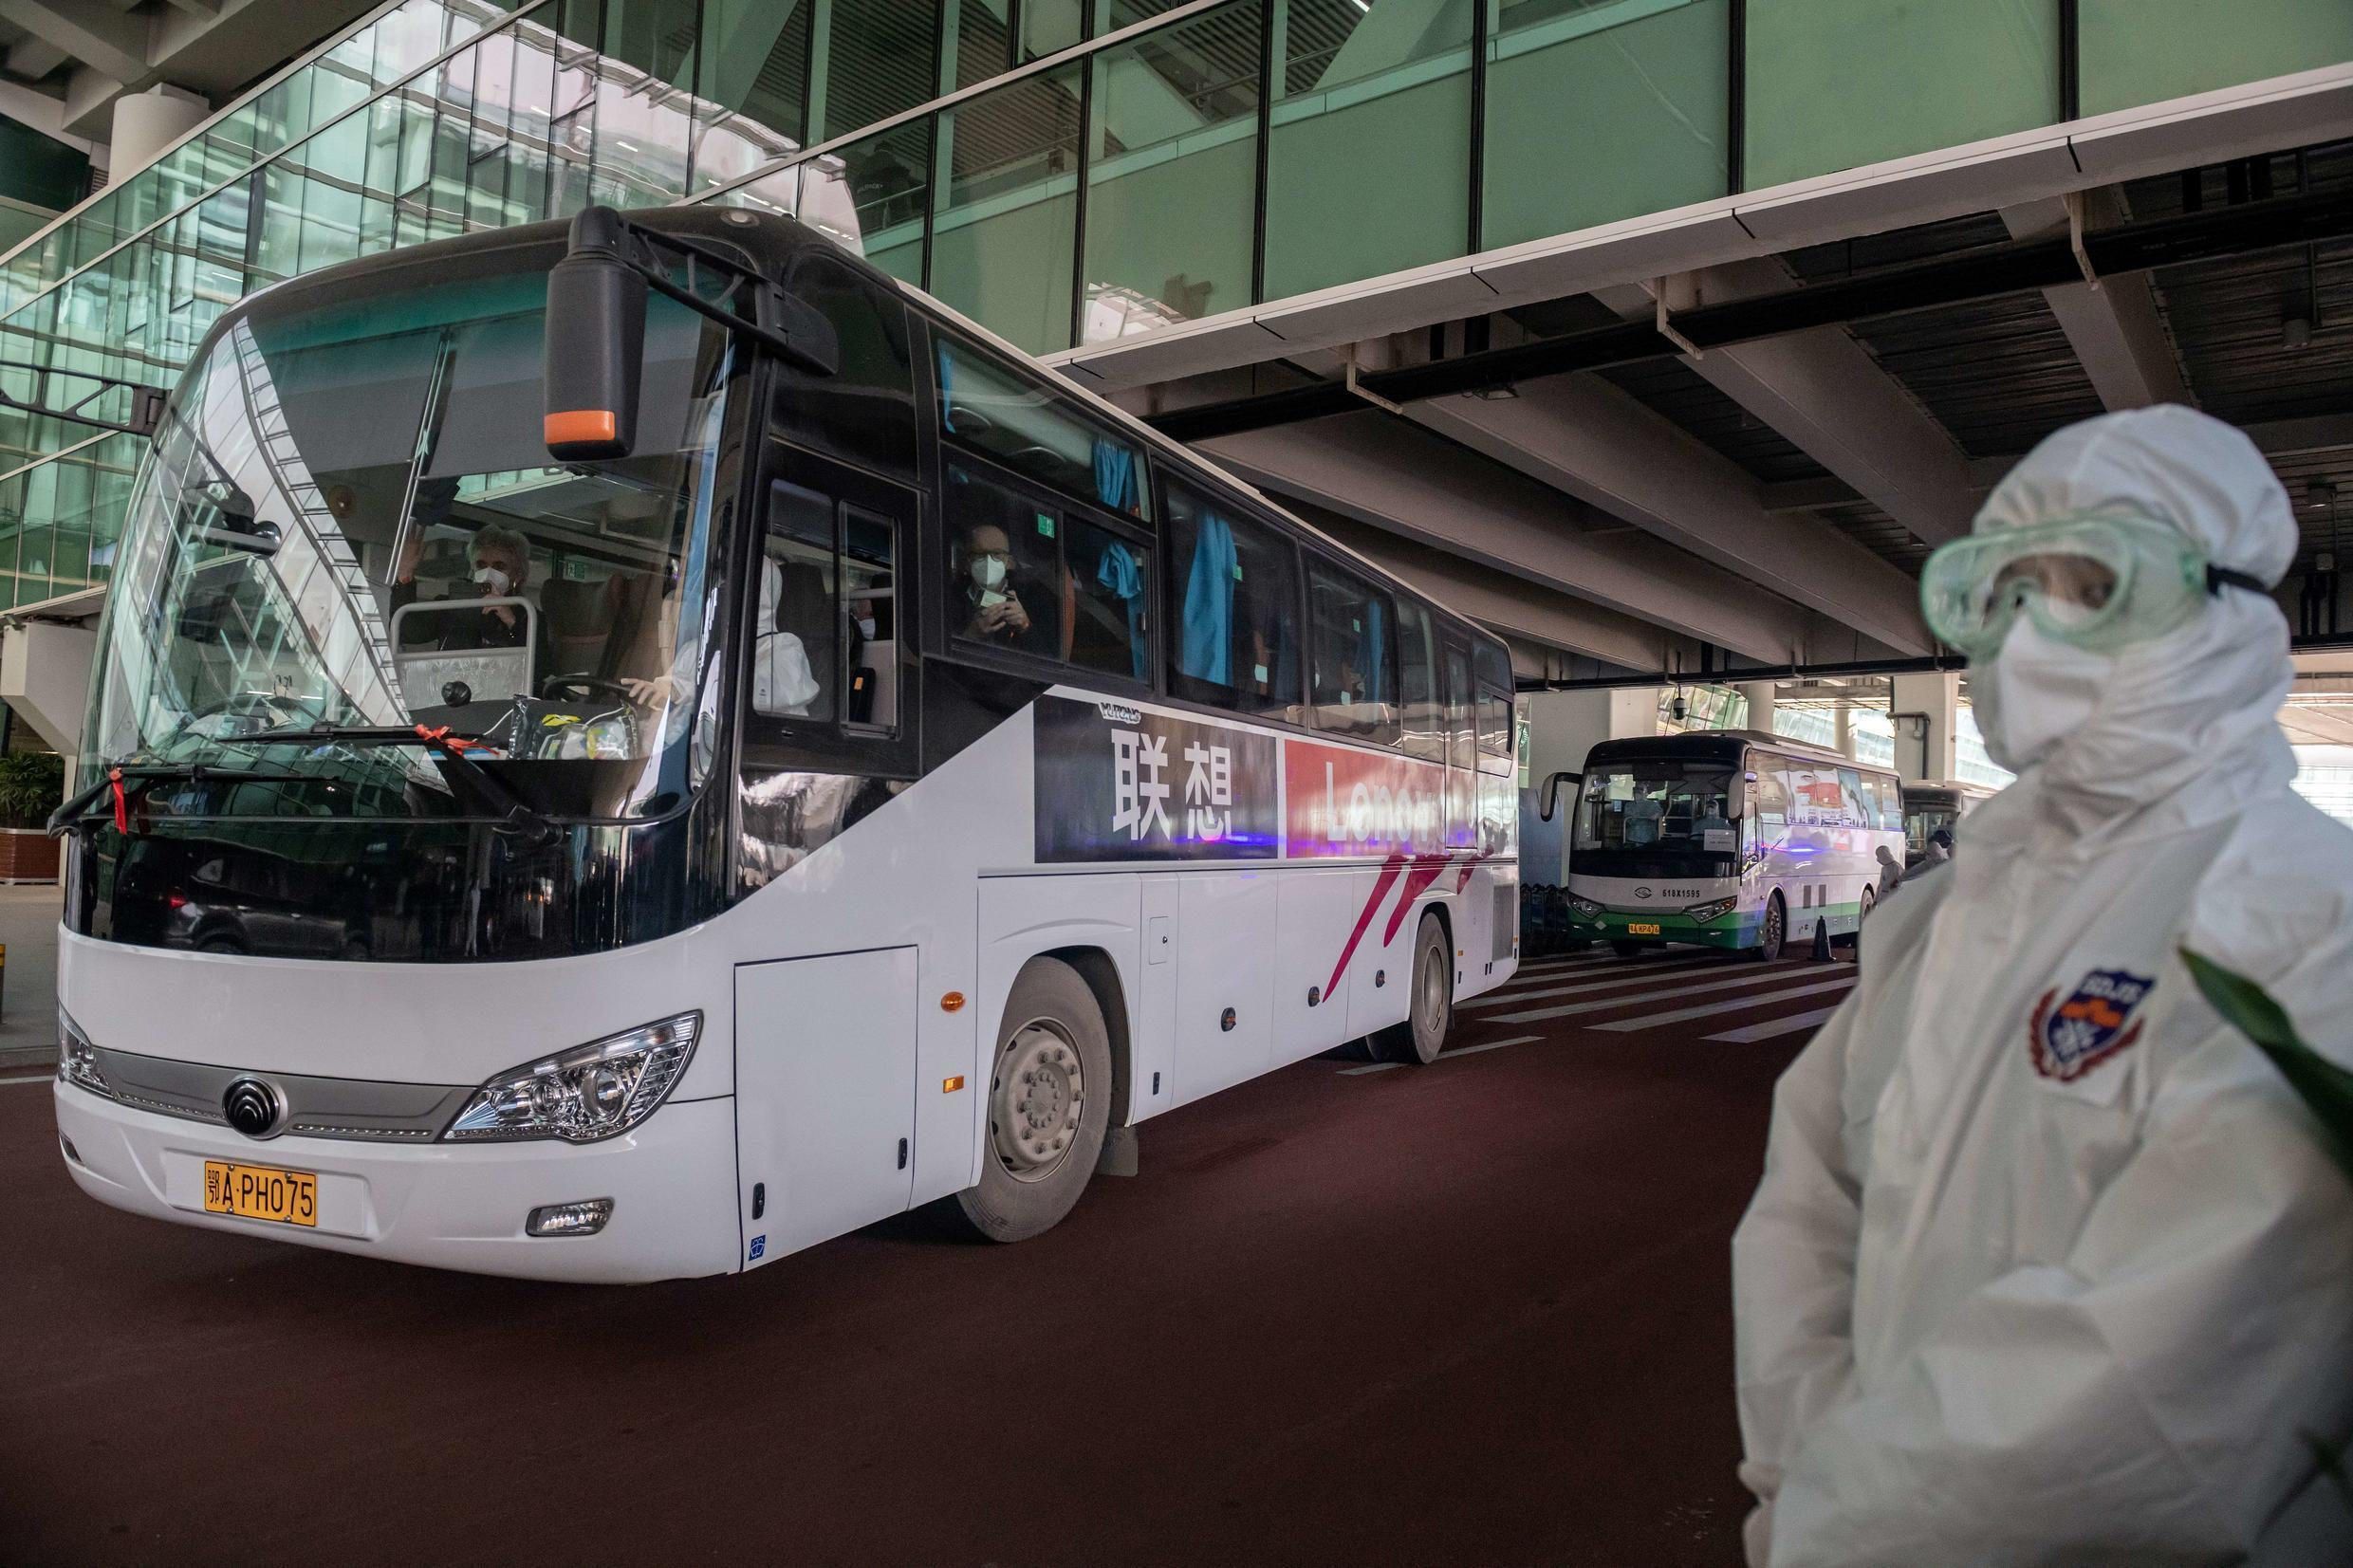 A bus carrying experts from a World Health Organization team that came to China to investigate the origins of the coronavirus leaves the airport after its arrival in Wuhan on January 14, 2021.